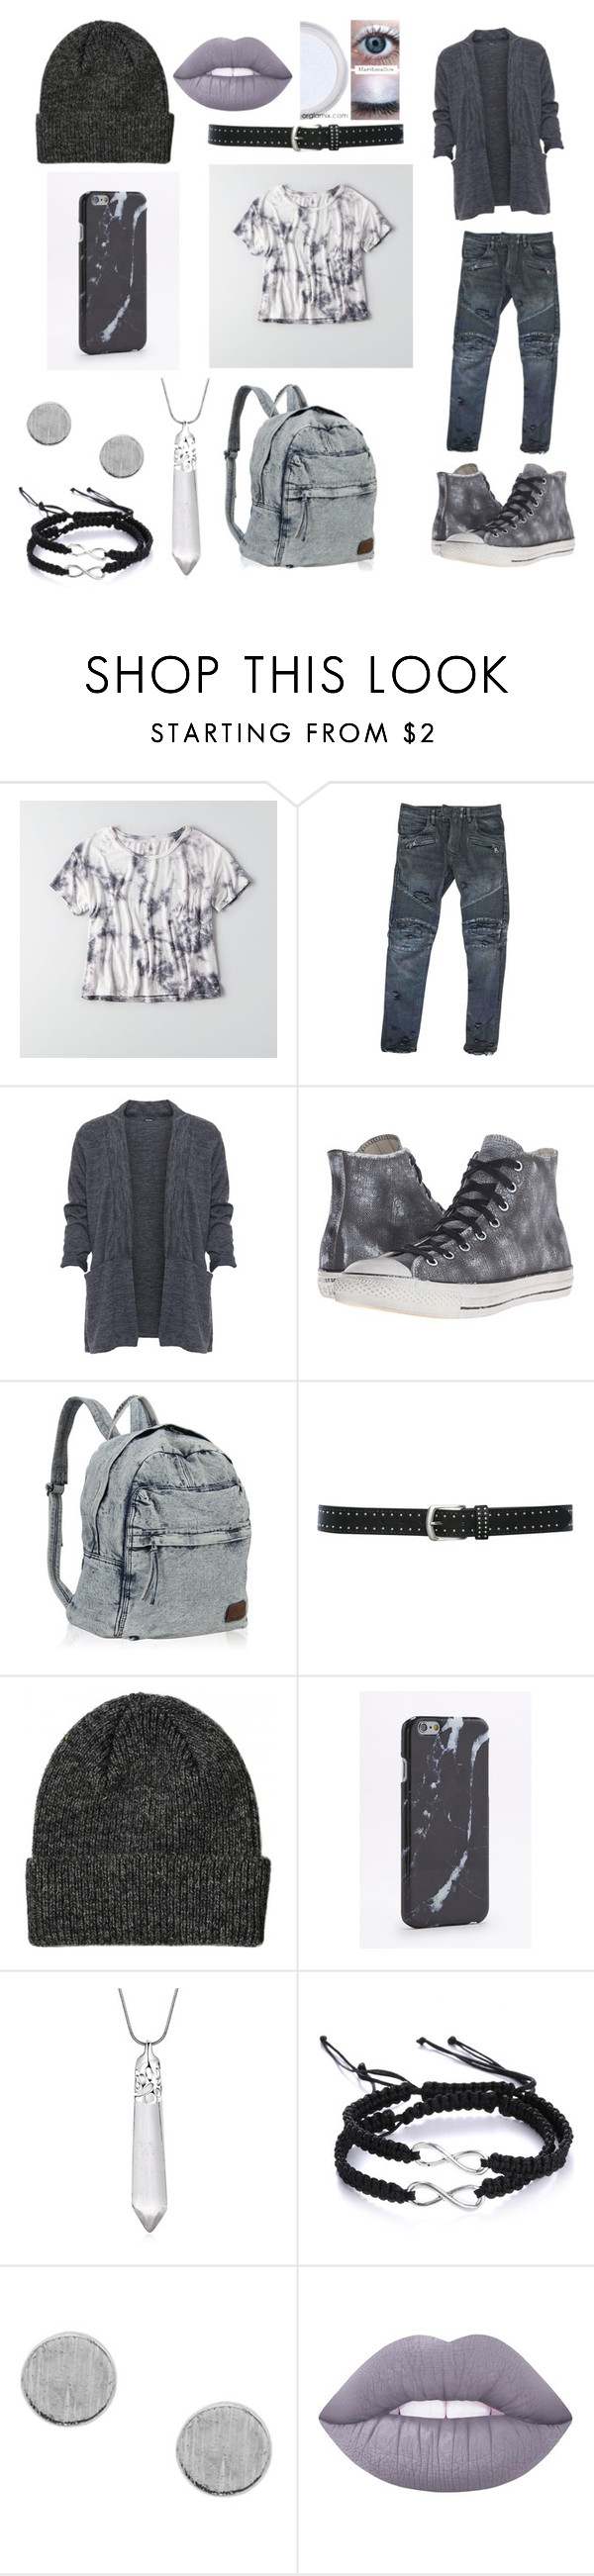 """""""idfk 6"""" by hikick ❤ liked on Polyvore featuring American Eagle Outfitters, Balmain, WearAll, Converse, M&Co and Lime Crime"""